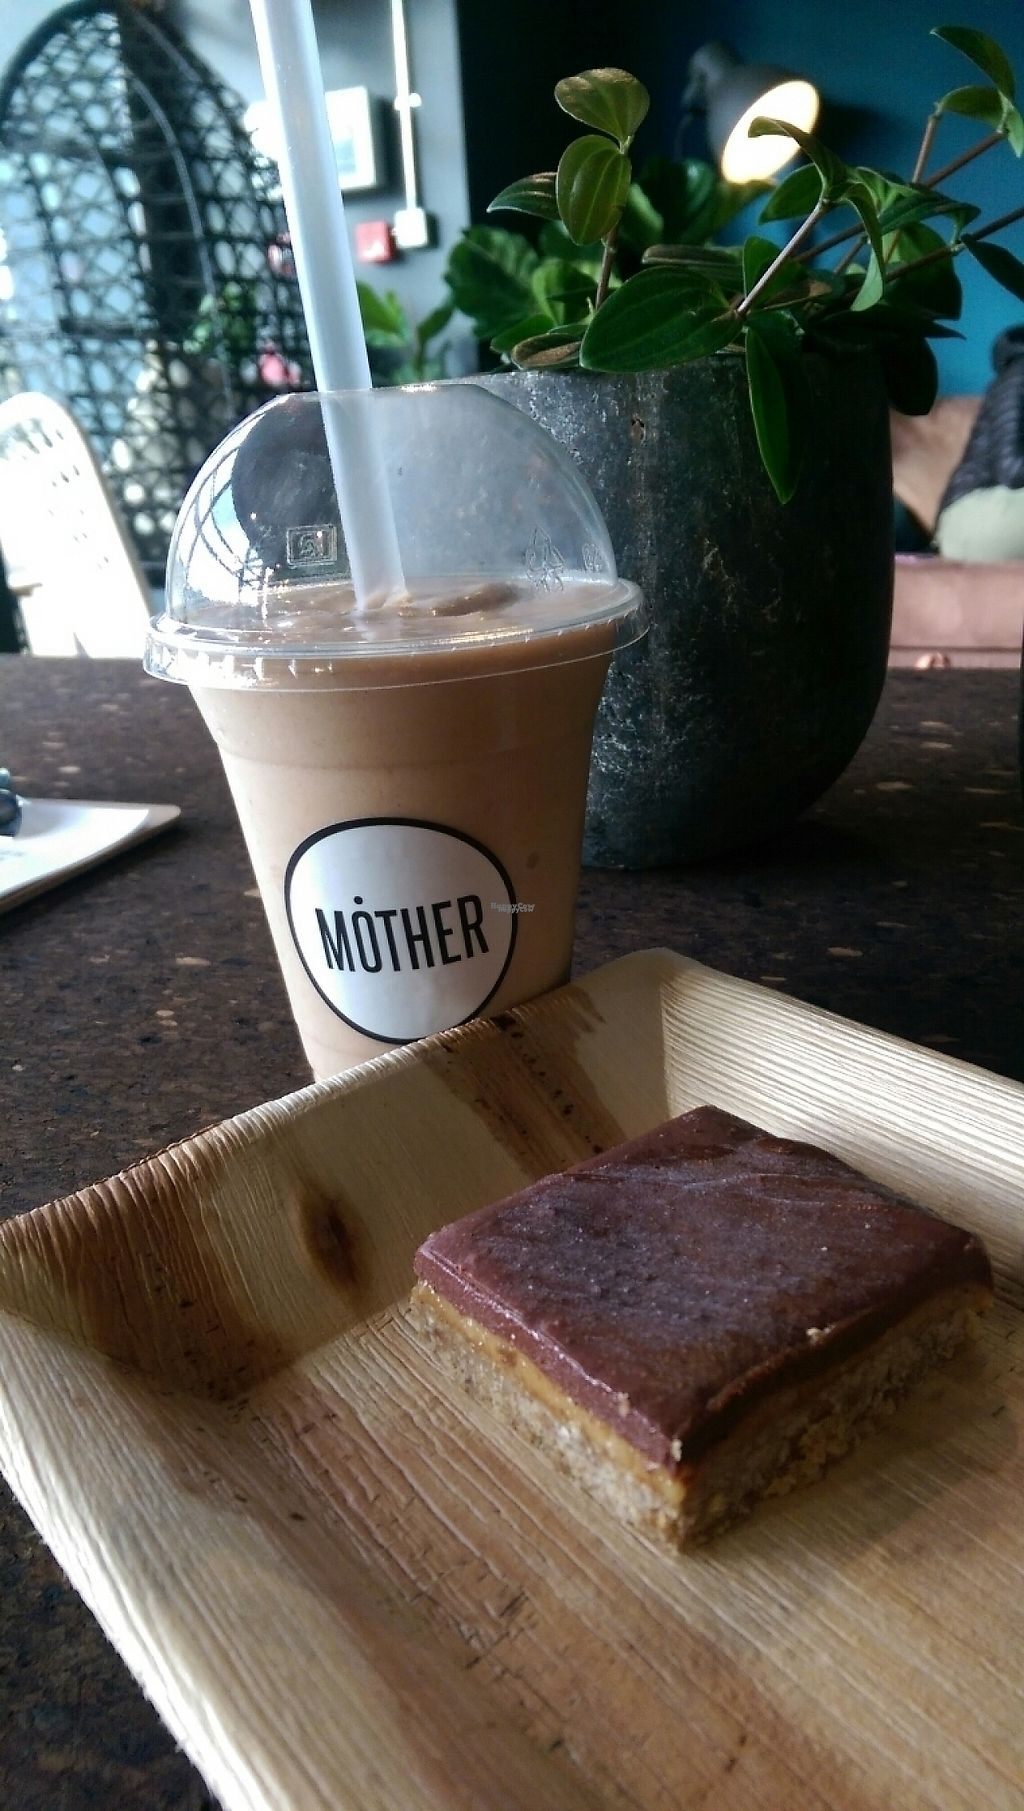 """Photo of MOTHER - Juice Works  by <a href=""""/members/profile/Melissaj1990"""">Melissaj1990</a> <br/>Smoothie and raw slice <br/> December 4, 2016  - <a href='/contact/abuse/image/83205/197325'>Report</a>"""